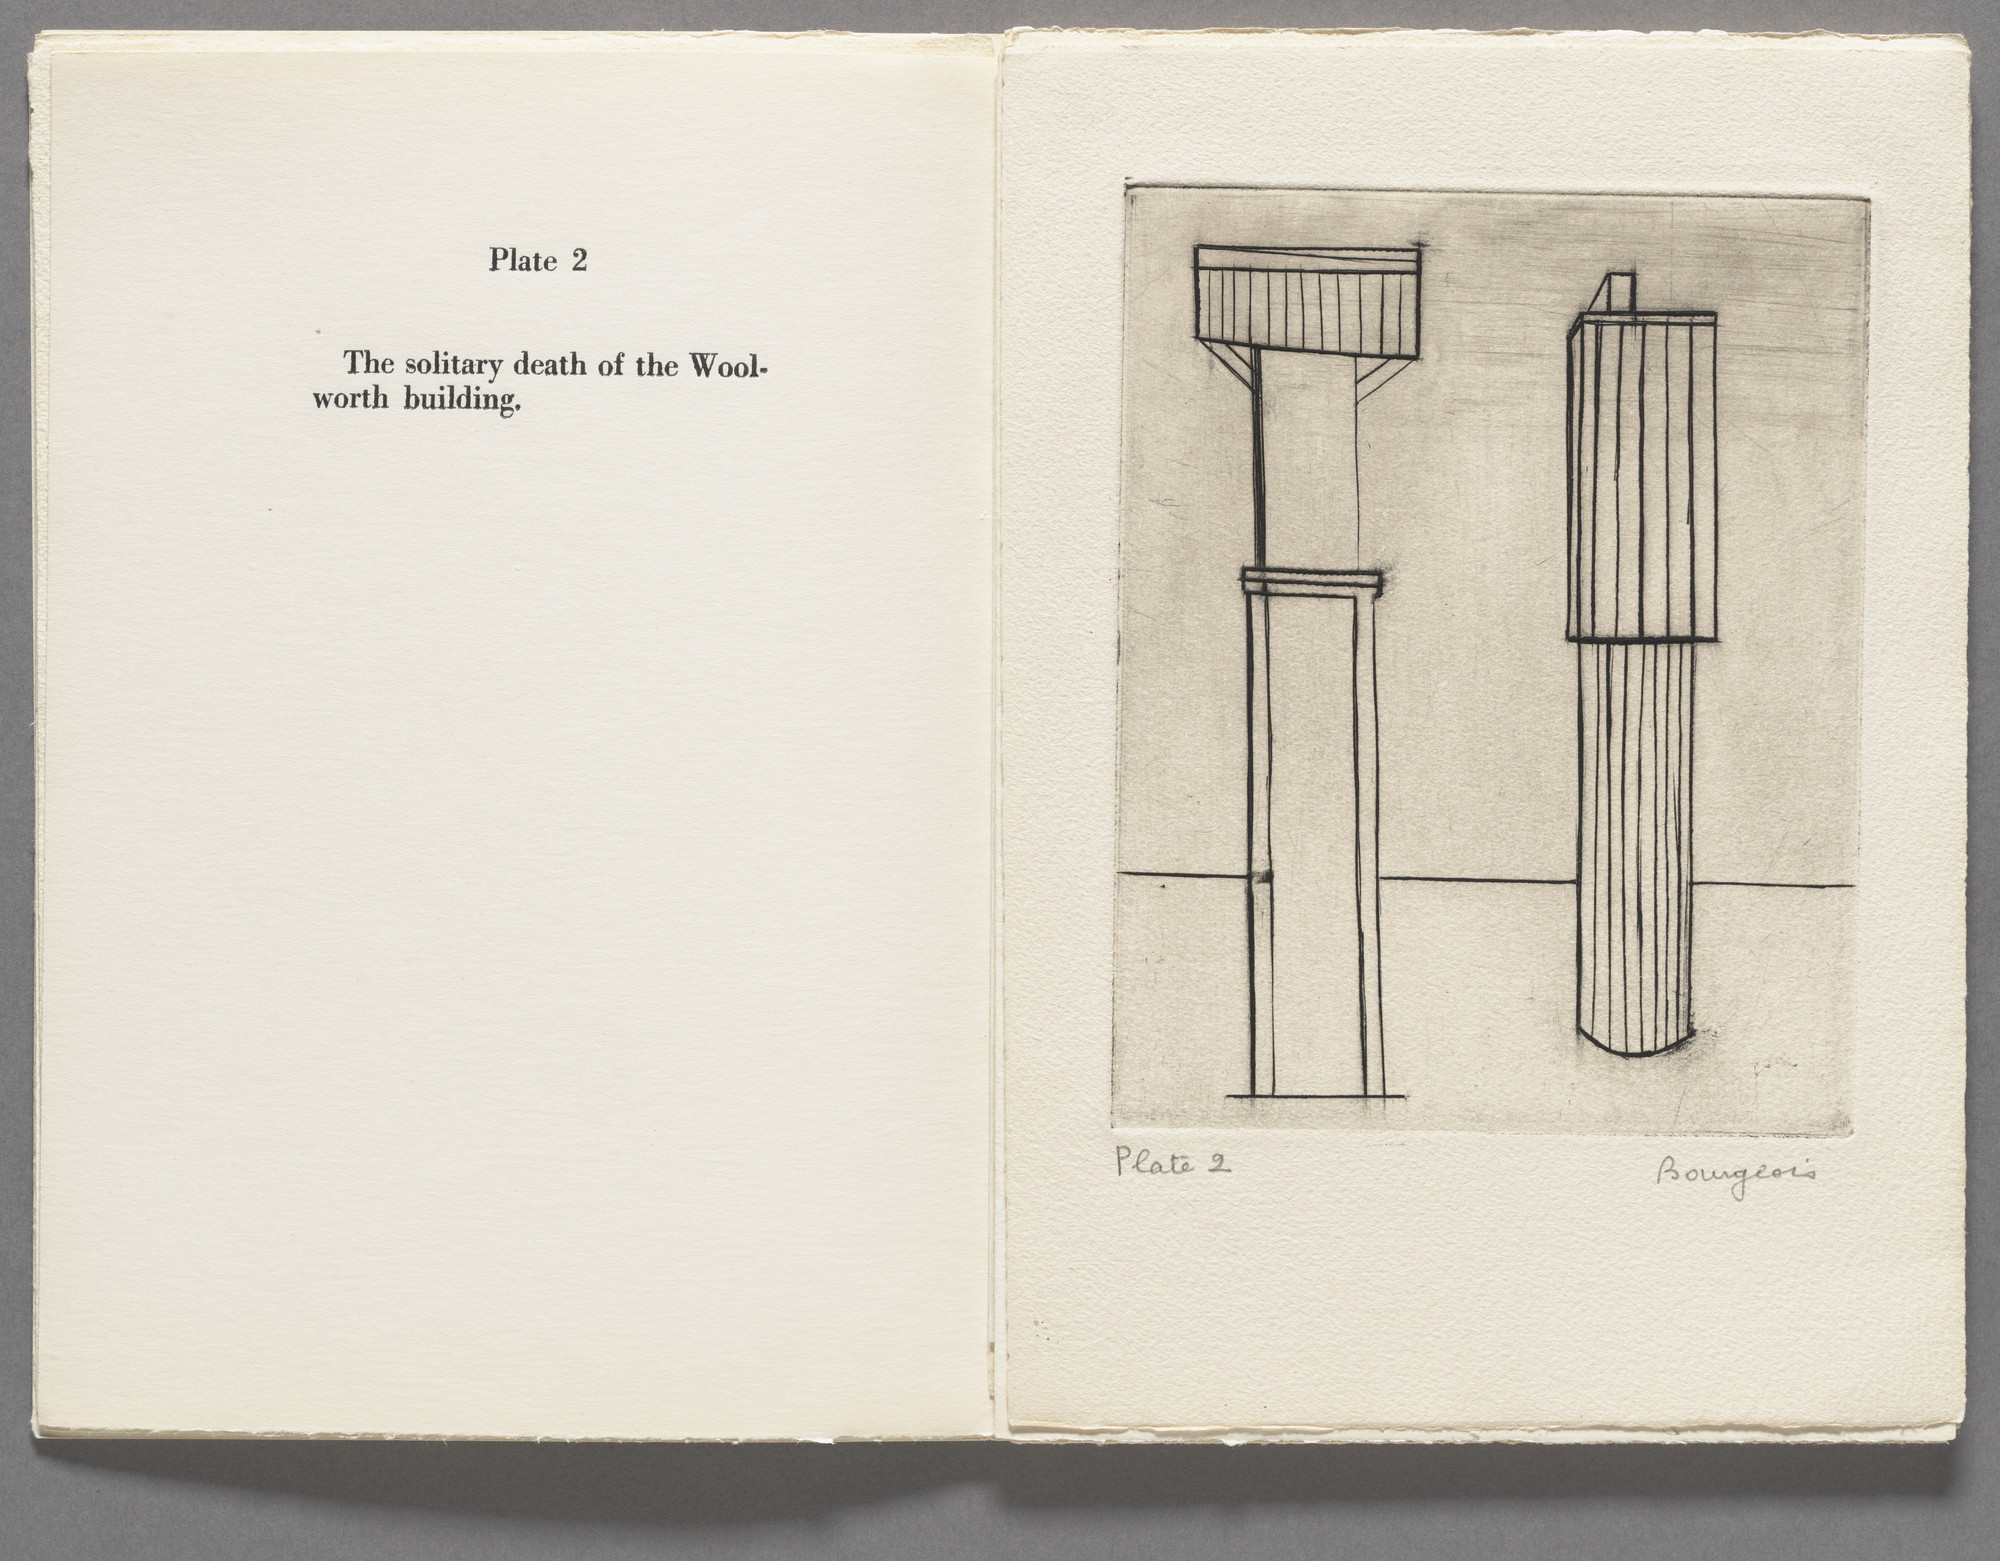 Louise Bourgeois. Plate 2 of 9, from the illustrated book, He Disappeared into Complete Silence, first edition (Example 1). 1947